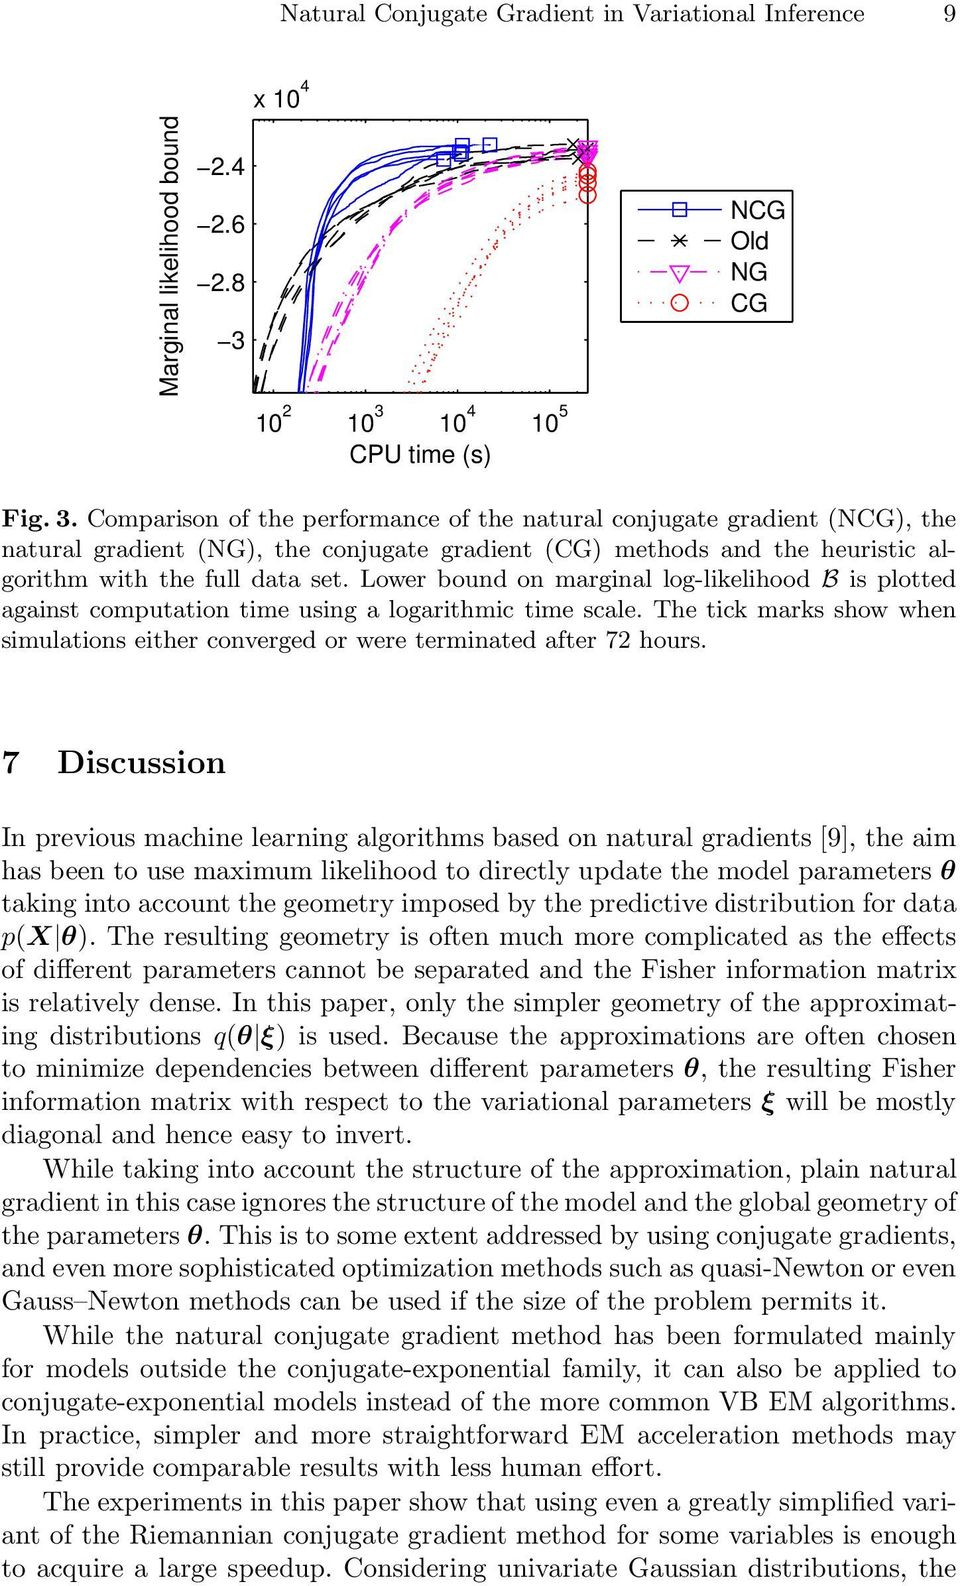 Natural Conjugate Gradient in Variational Inference - PDF